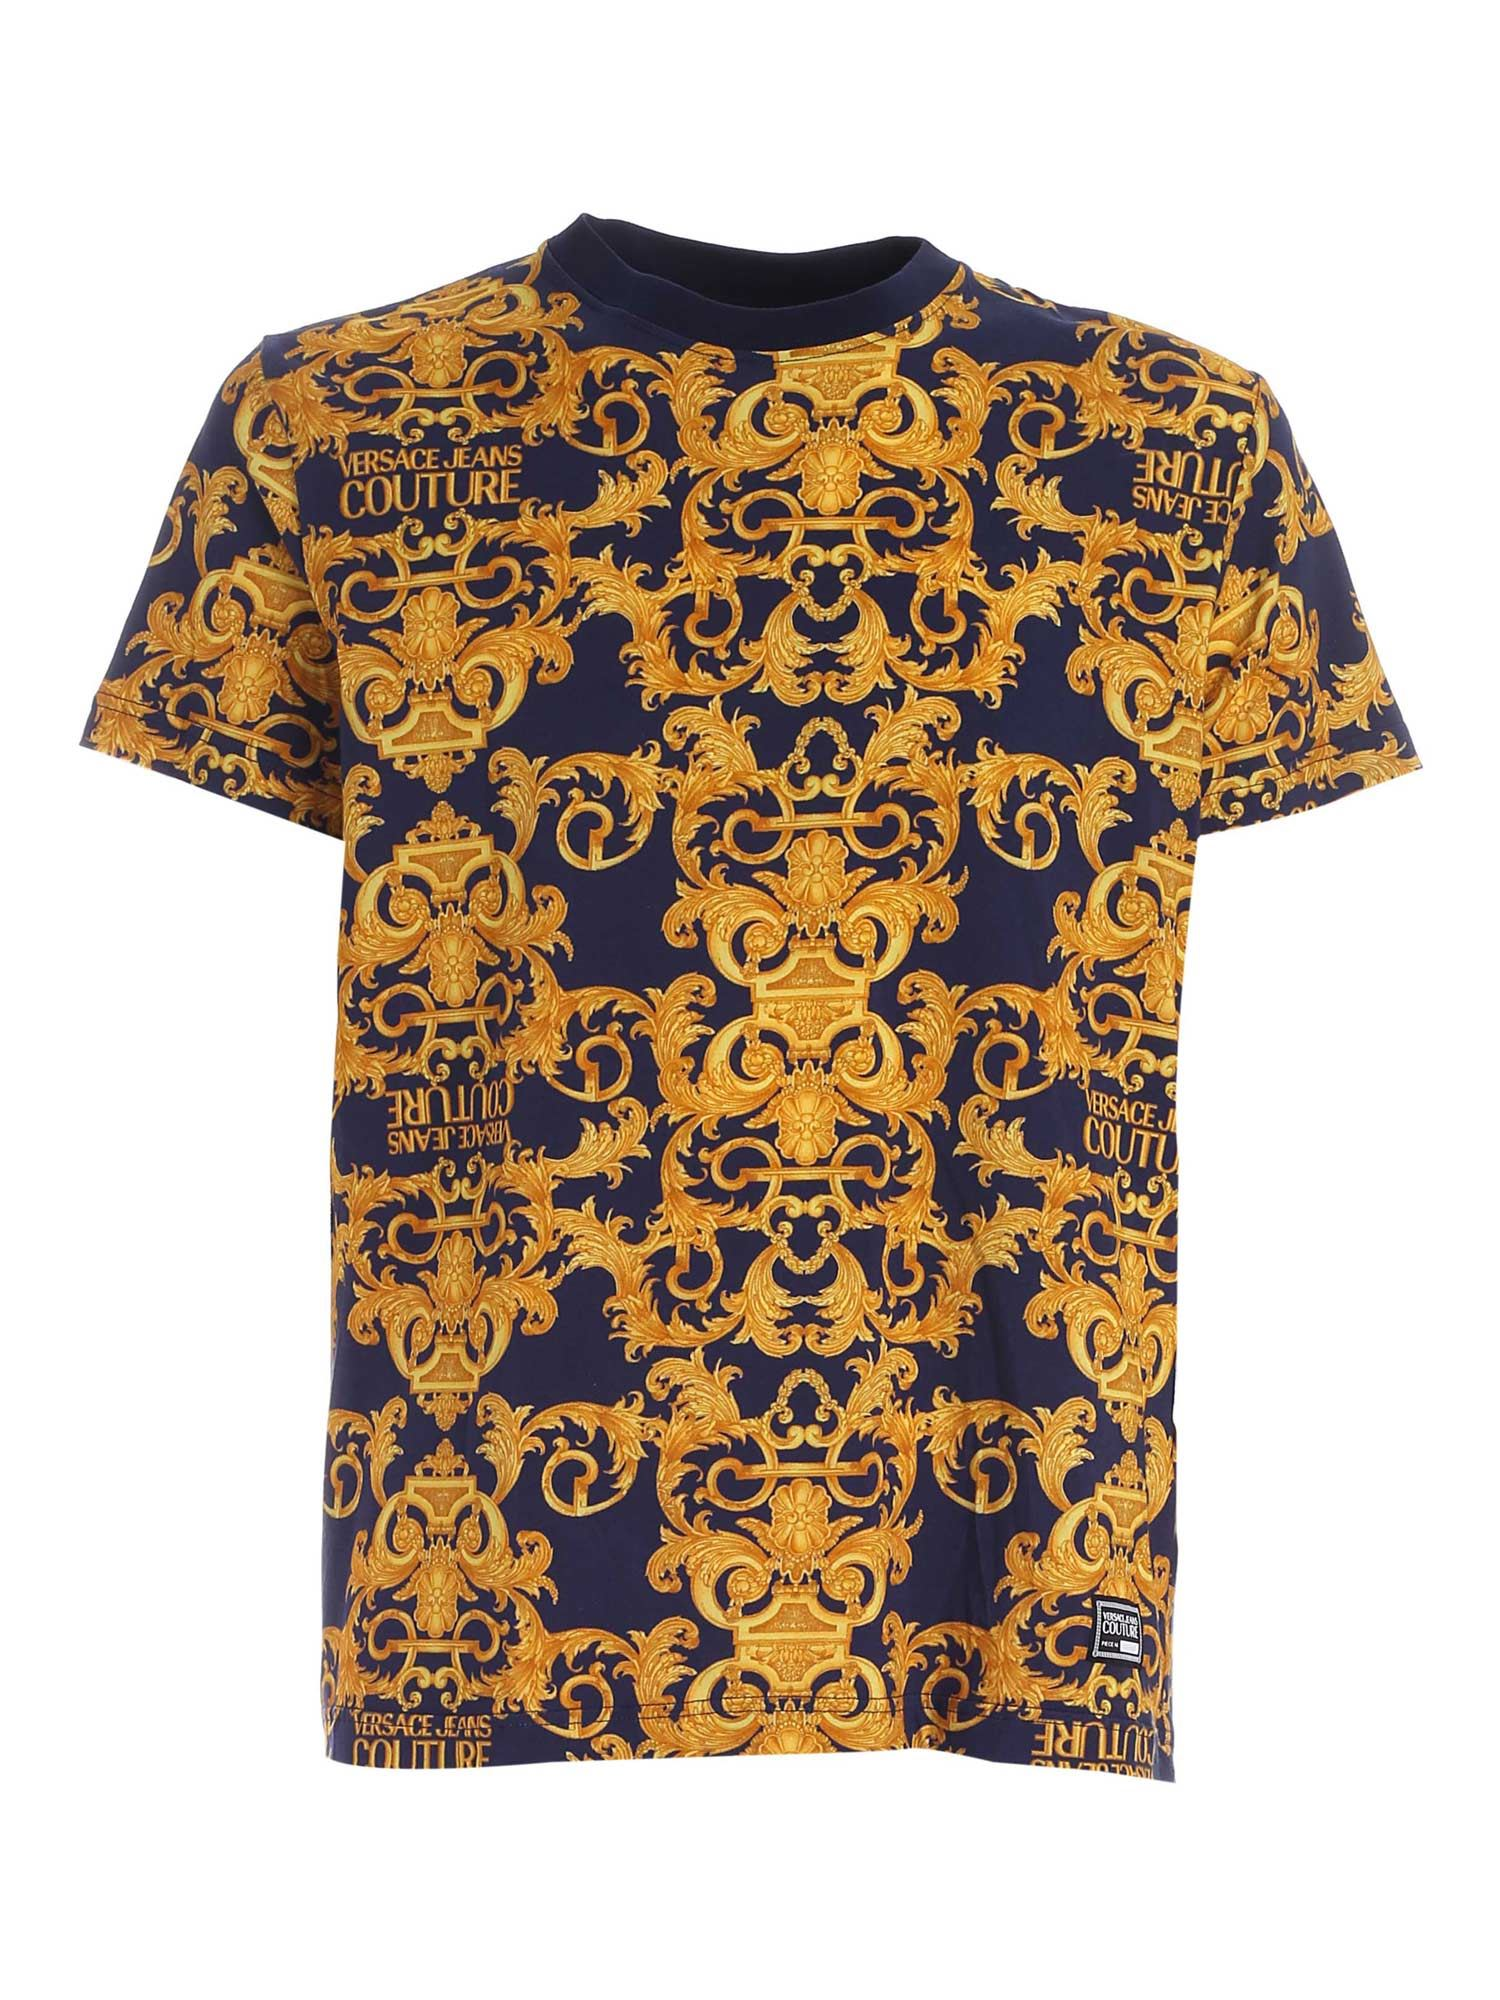 Versace Jeans Couture LOGO BAROQUE PRINT T-SHIRT IN BLUE